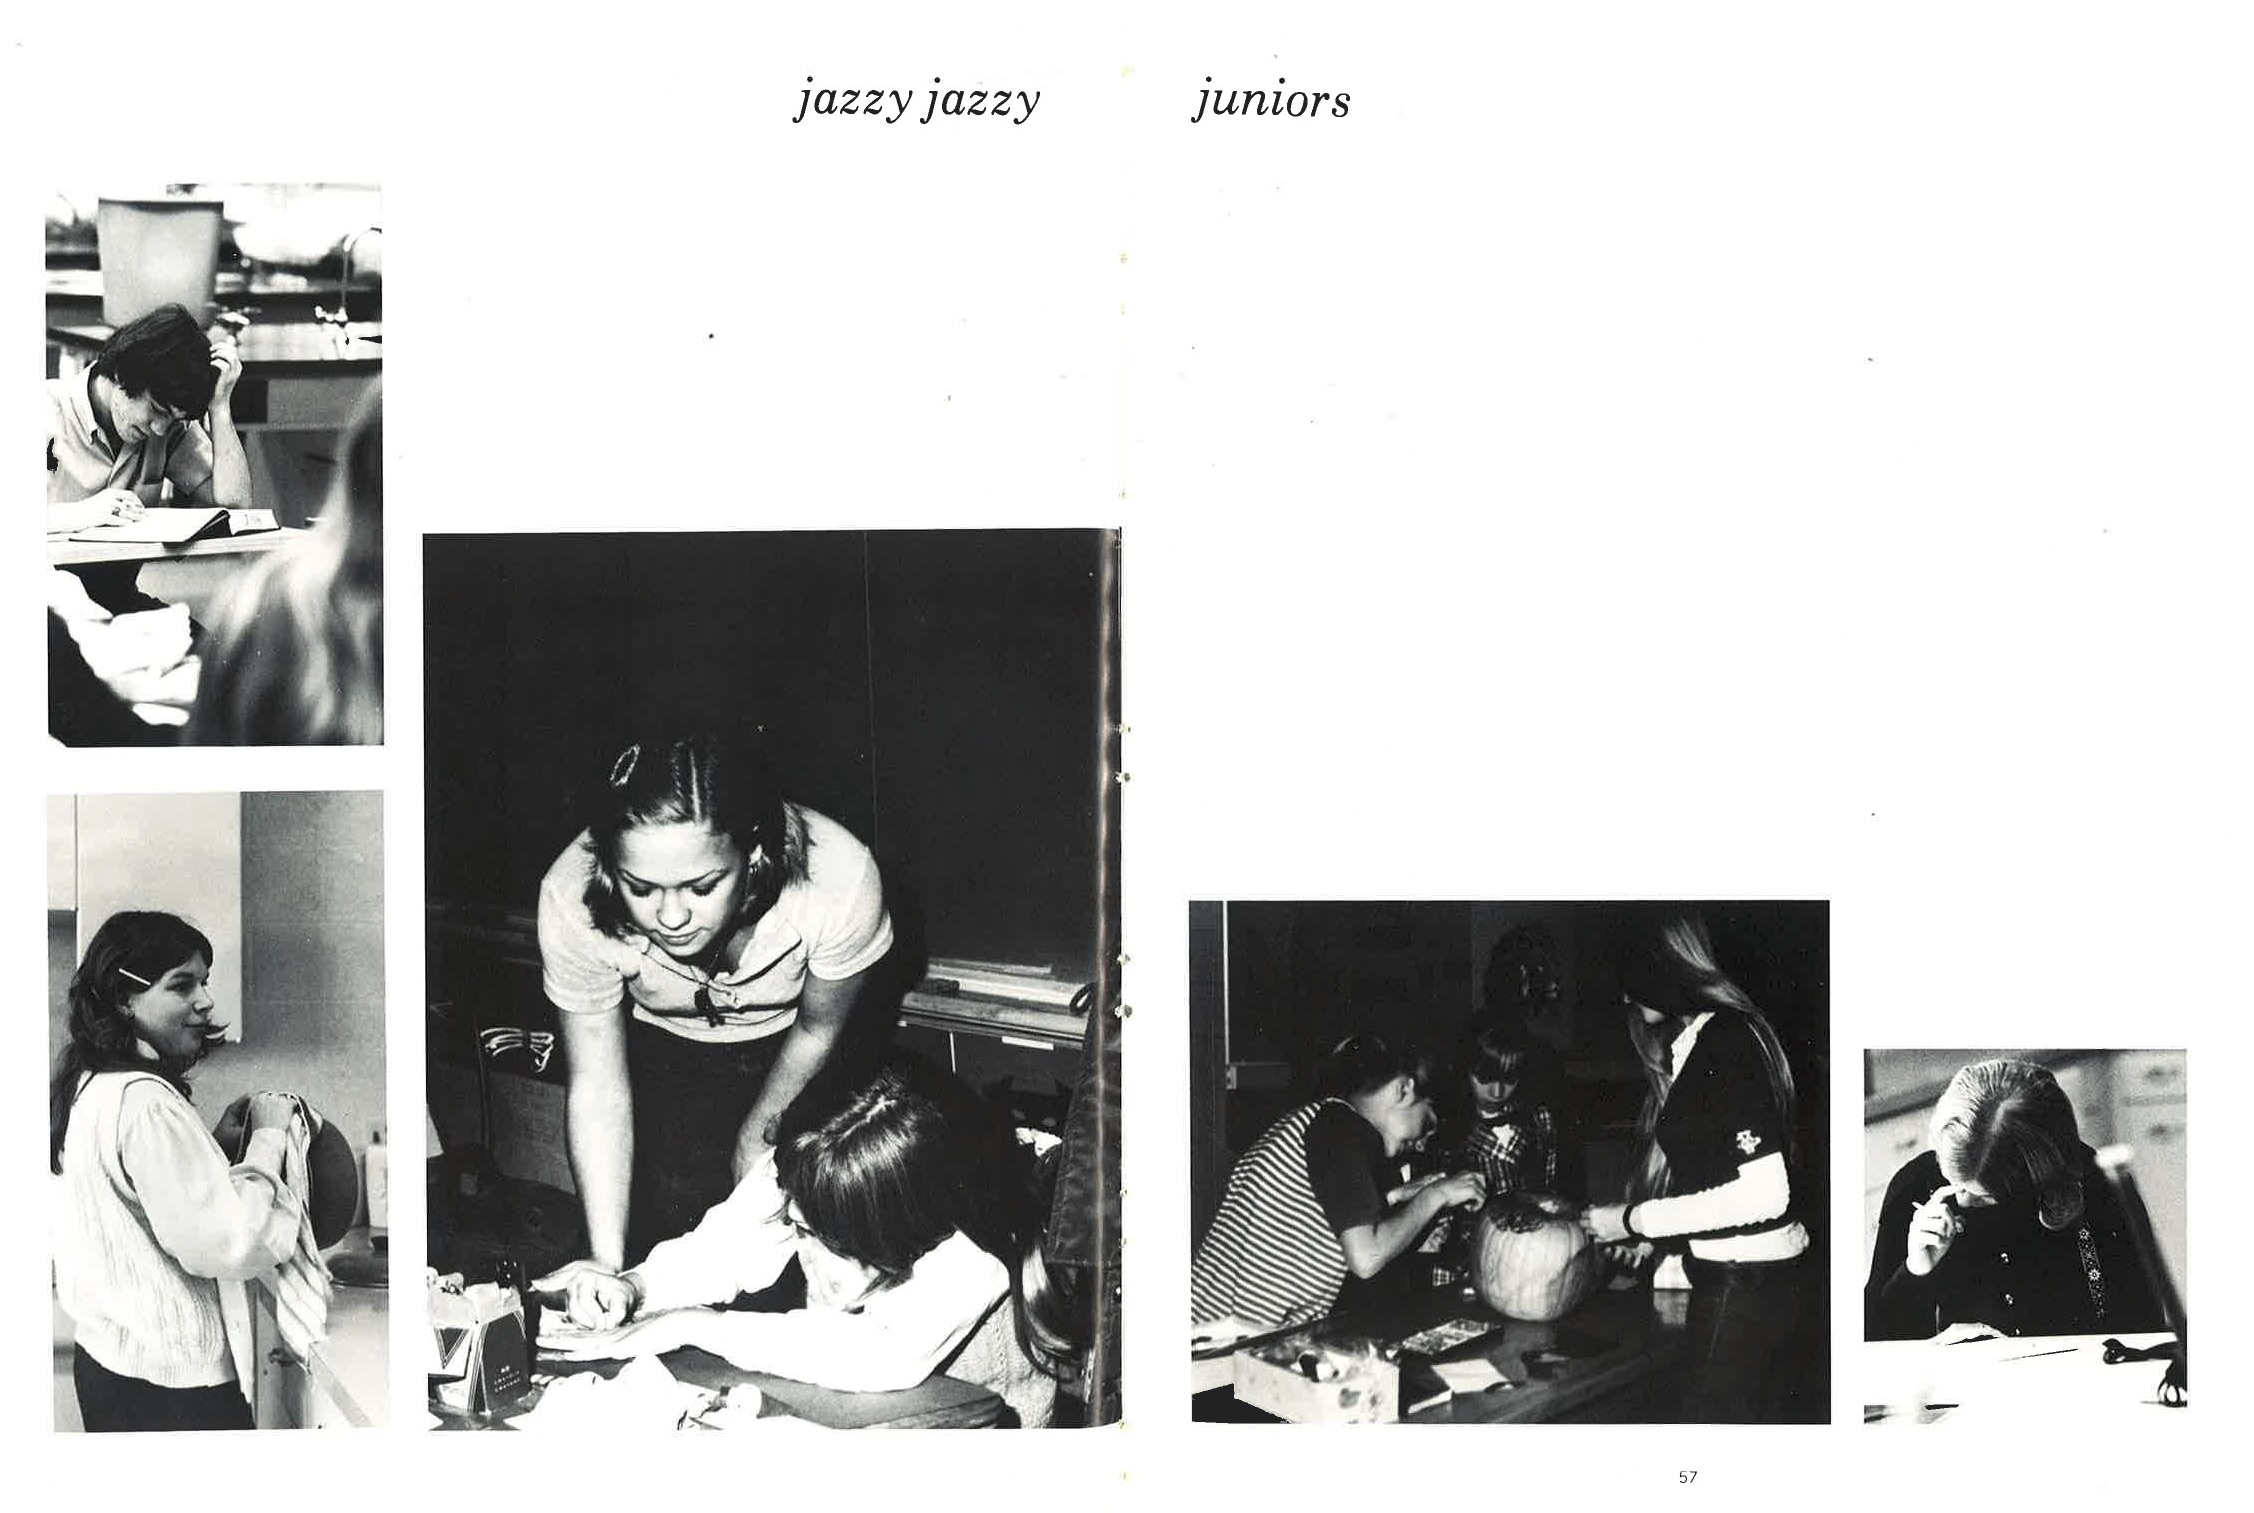 1973_Yearbook_56-57.jpg